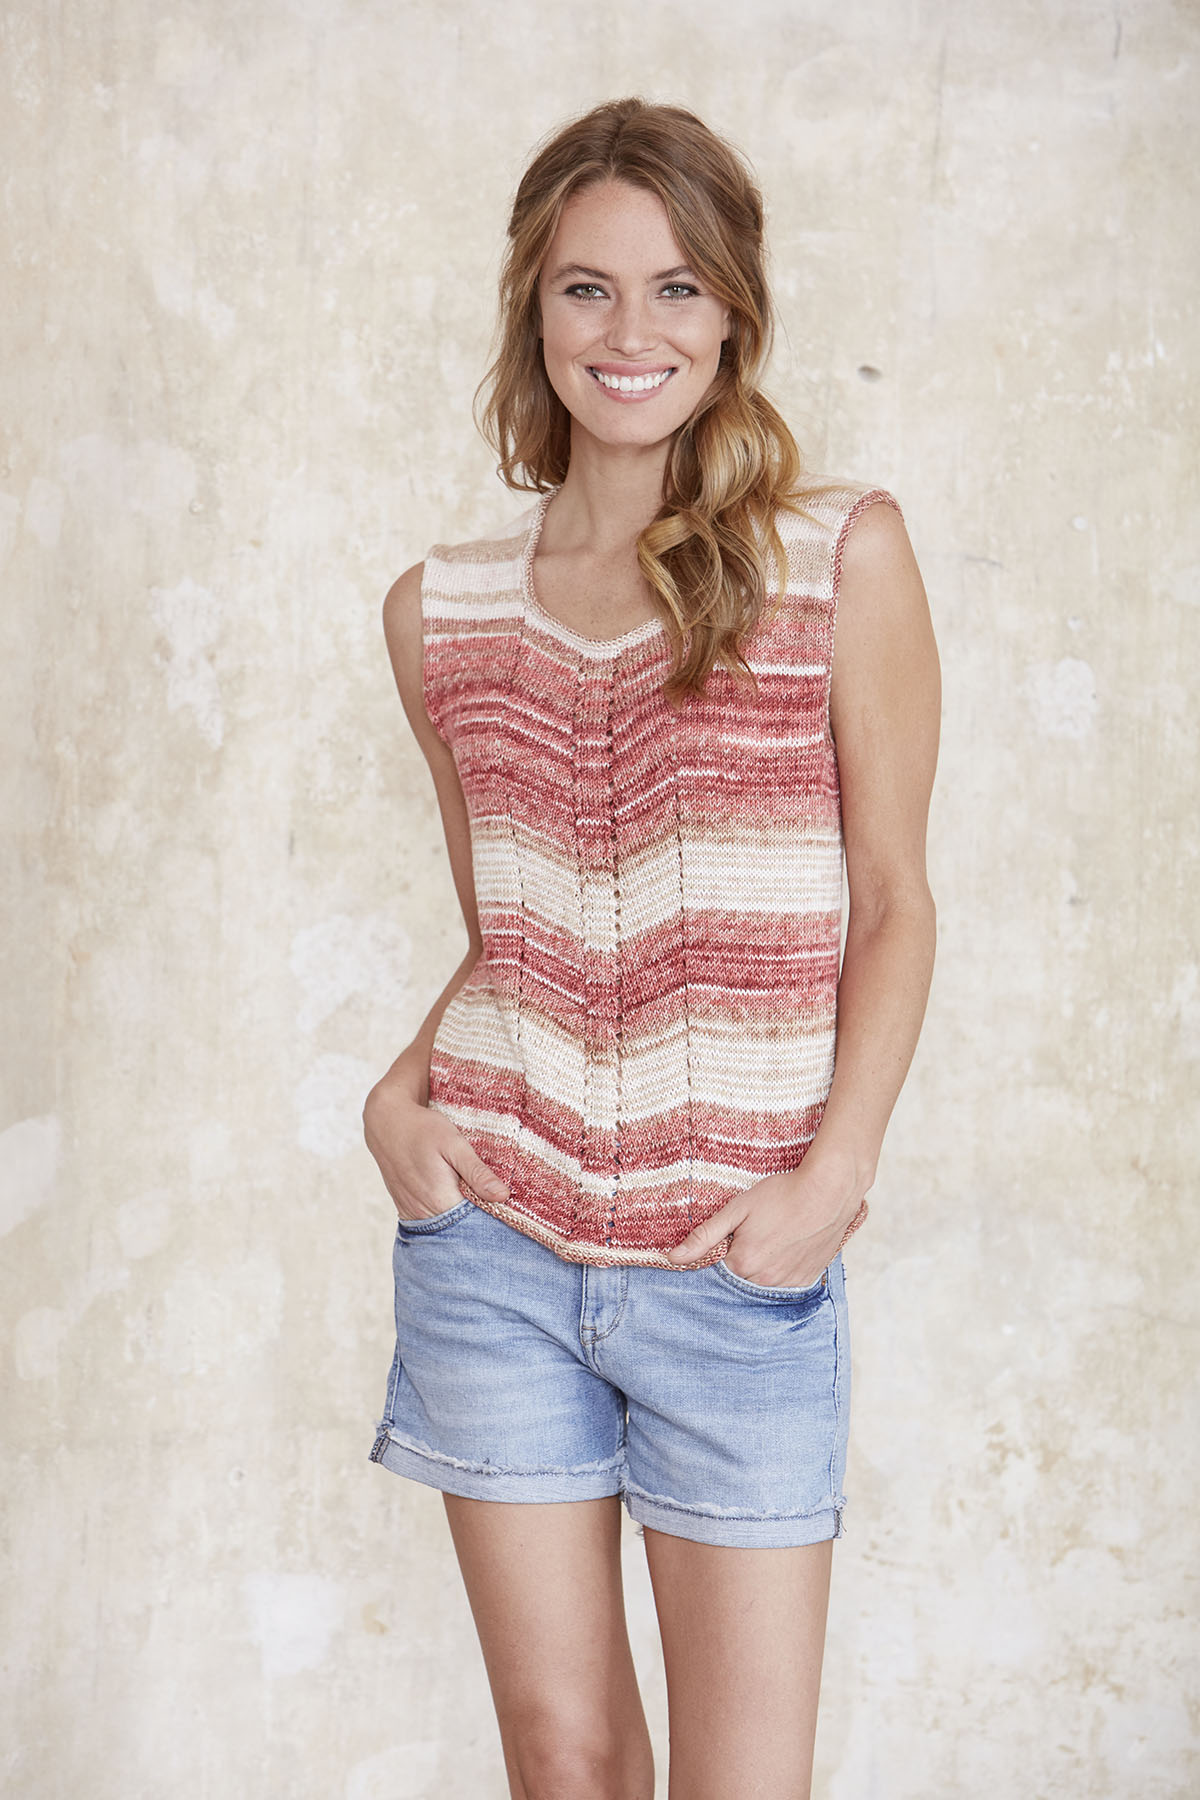 Summery Top Free Knitting Pattern. Modern top with eyelet feature in the front to knit for free with this pattern. This top looks great knit with variegated yarn and is sure to be one of your favorite go to Summer knit tops.